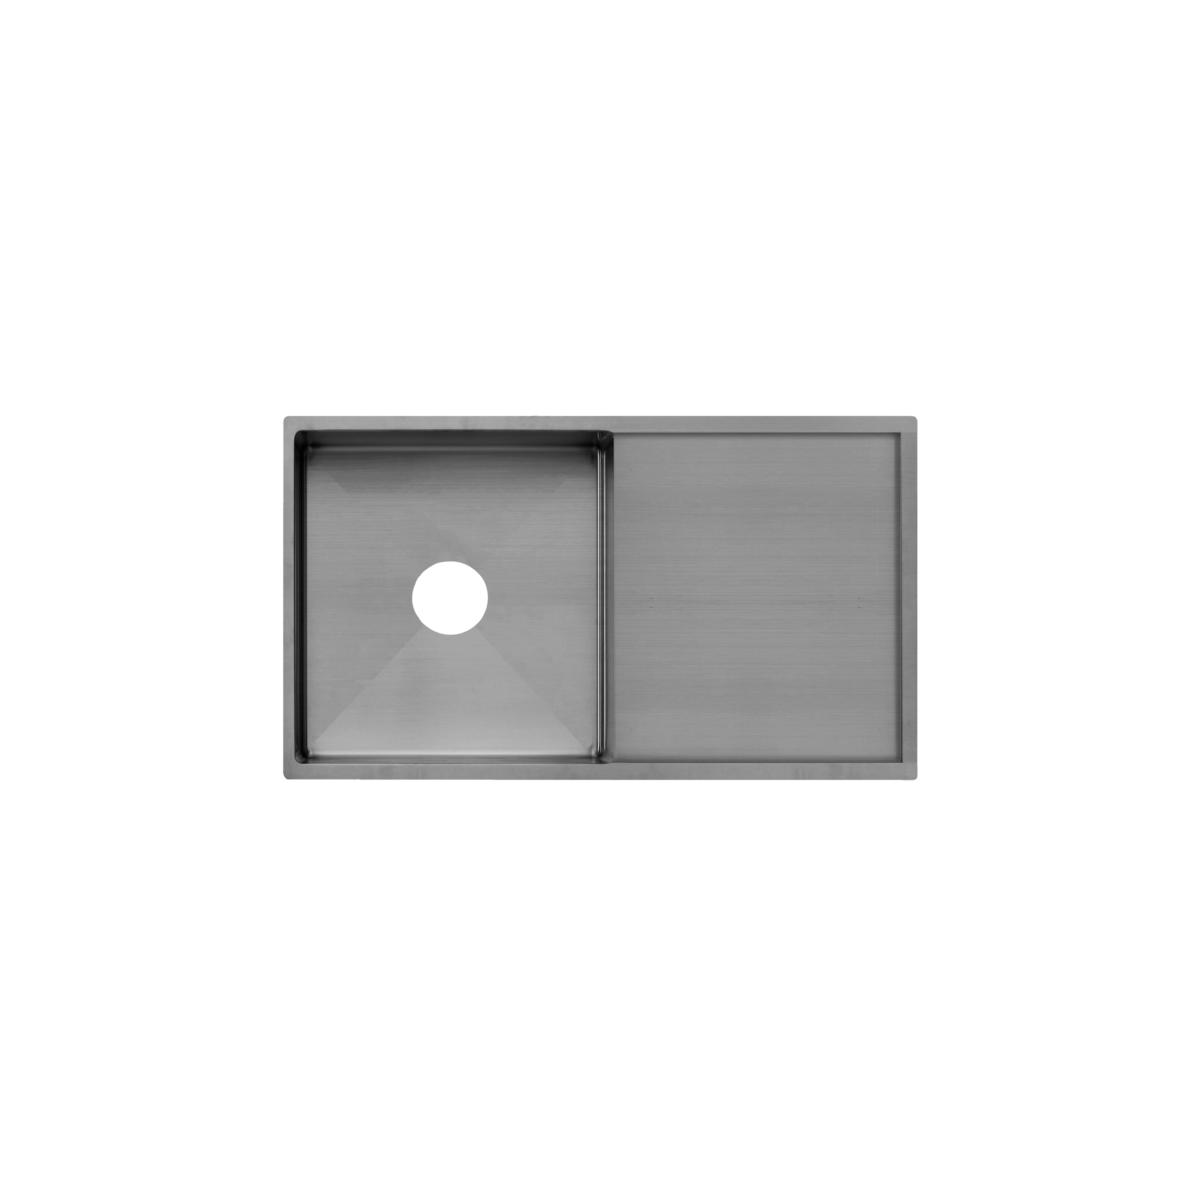 Jai Single Kitchen Sink 880mm - Gunmetal